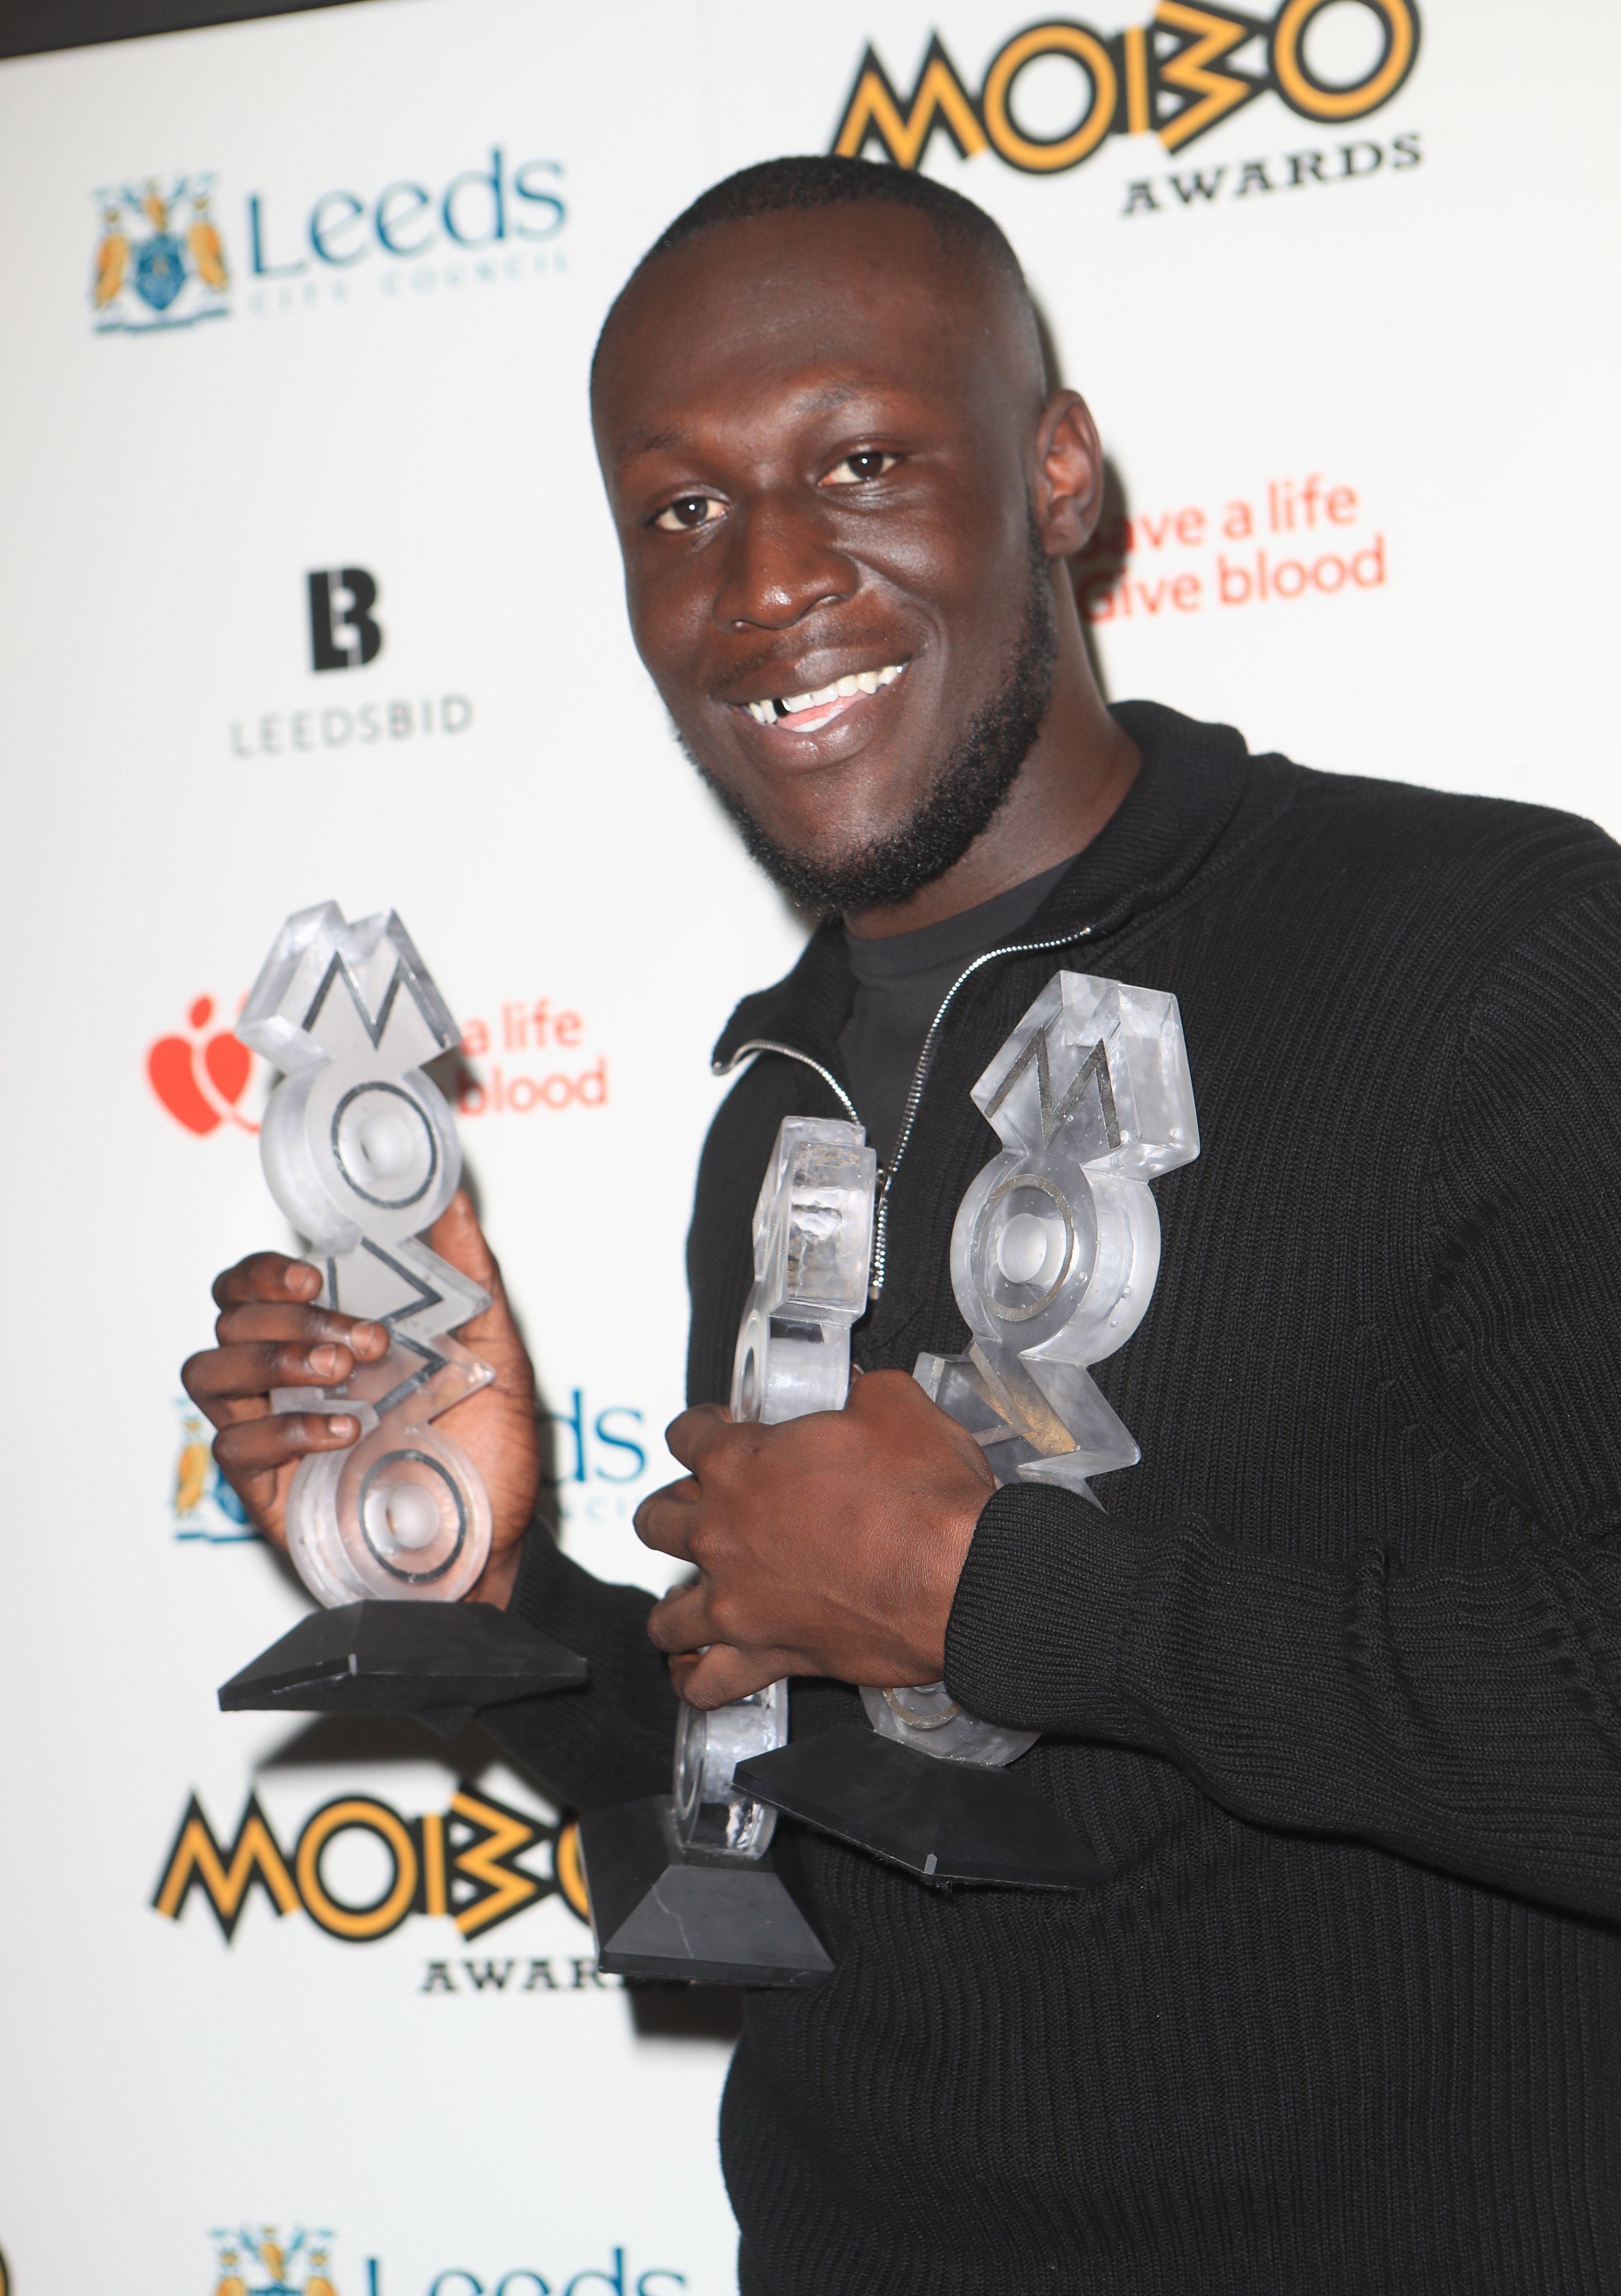 Stormzy Leads This Year's Mobos Winners With Huge Awards